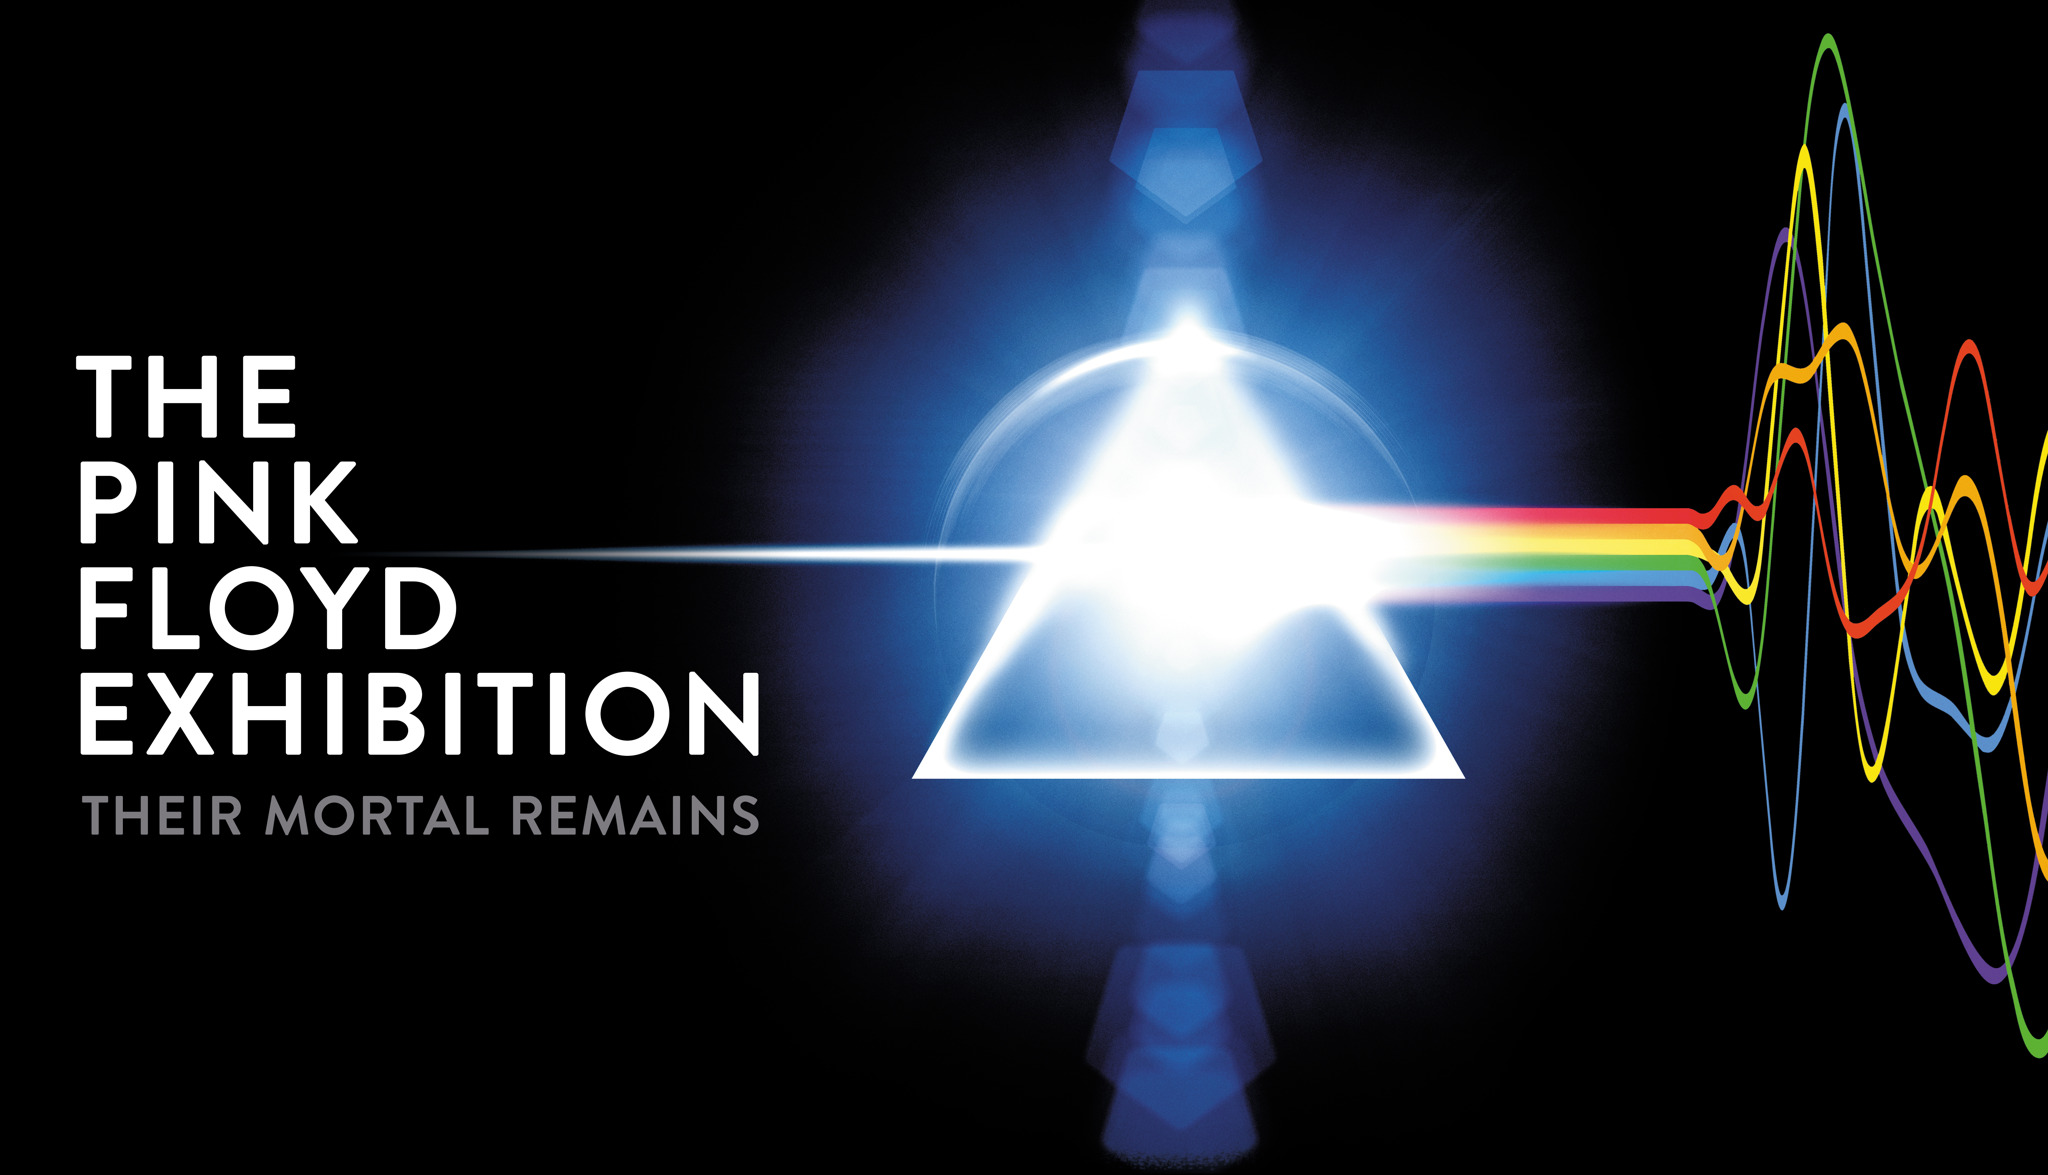 The Pink Floyd Exhibition: Their Mortal Remains continues